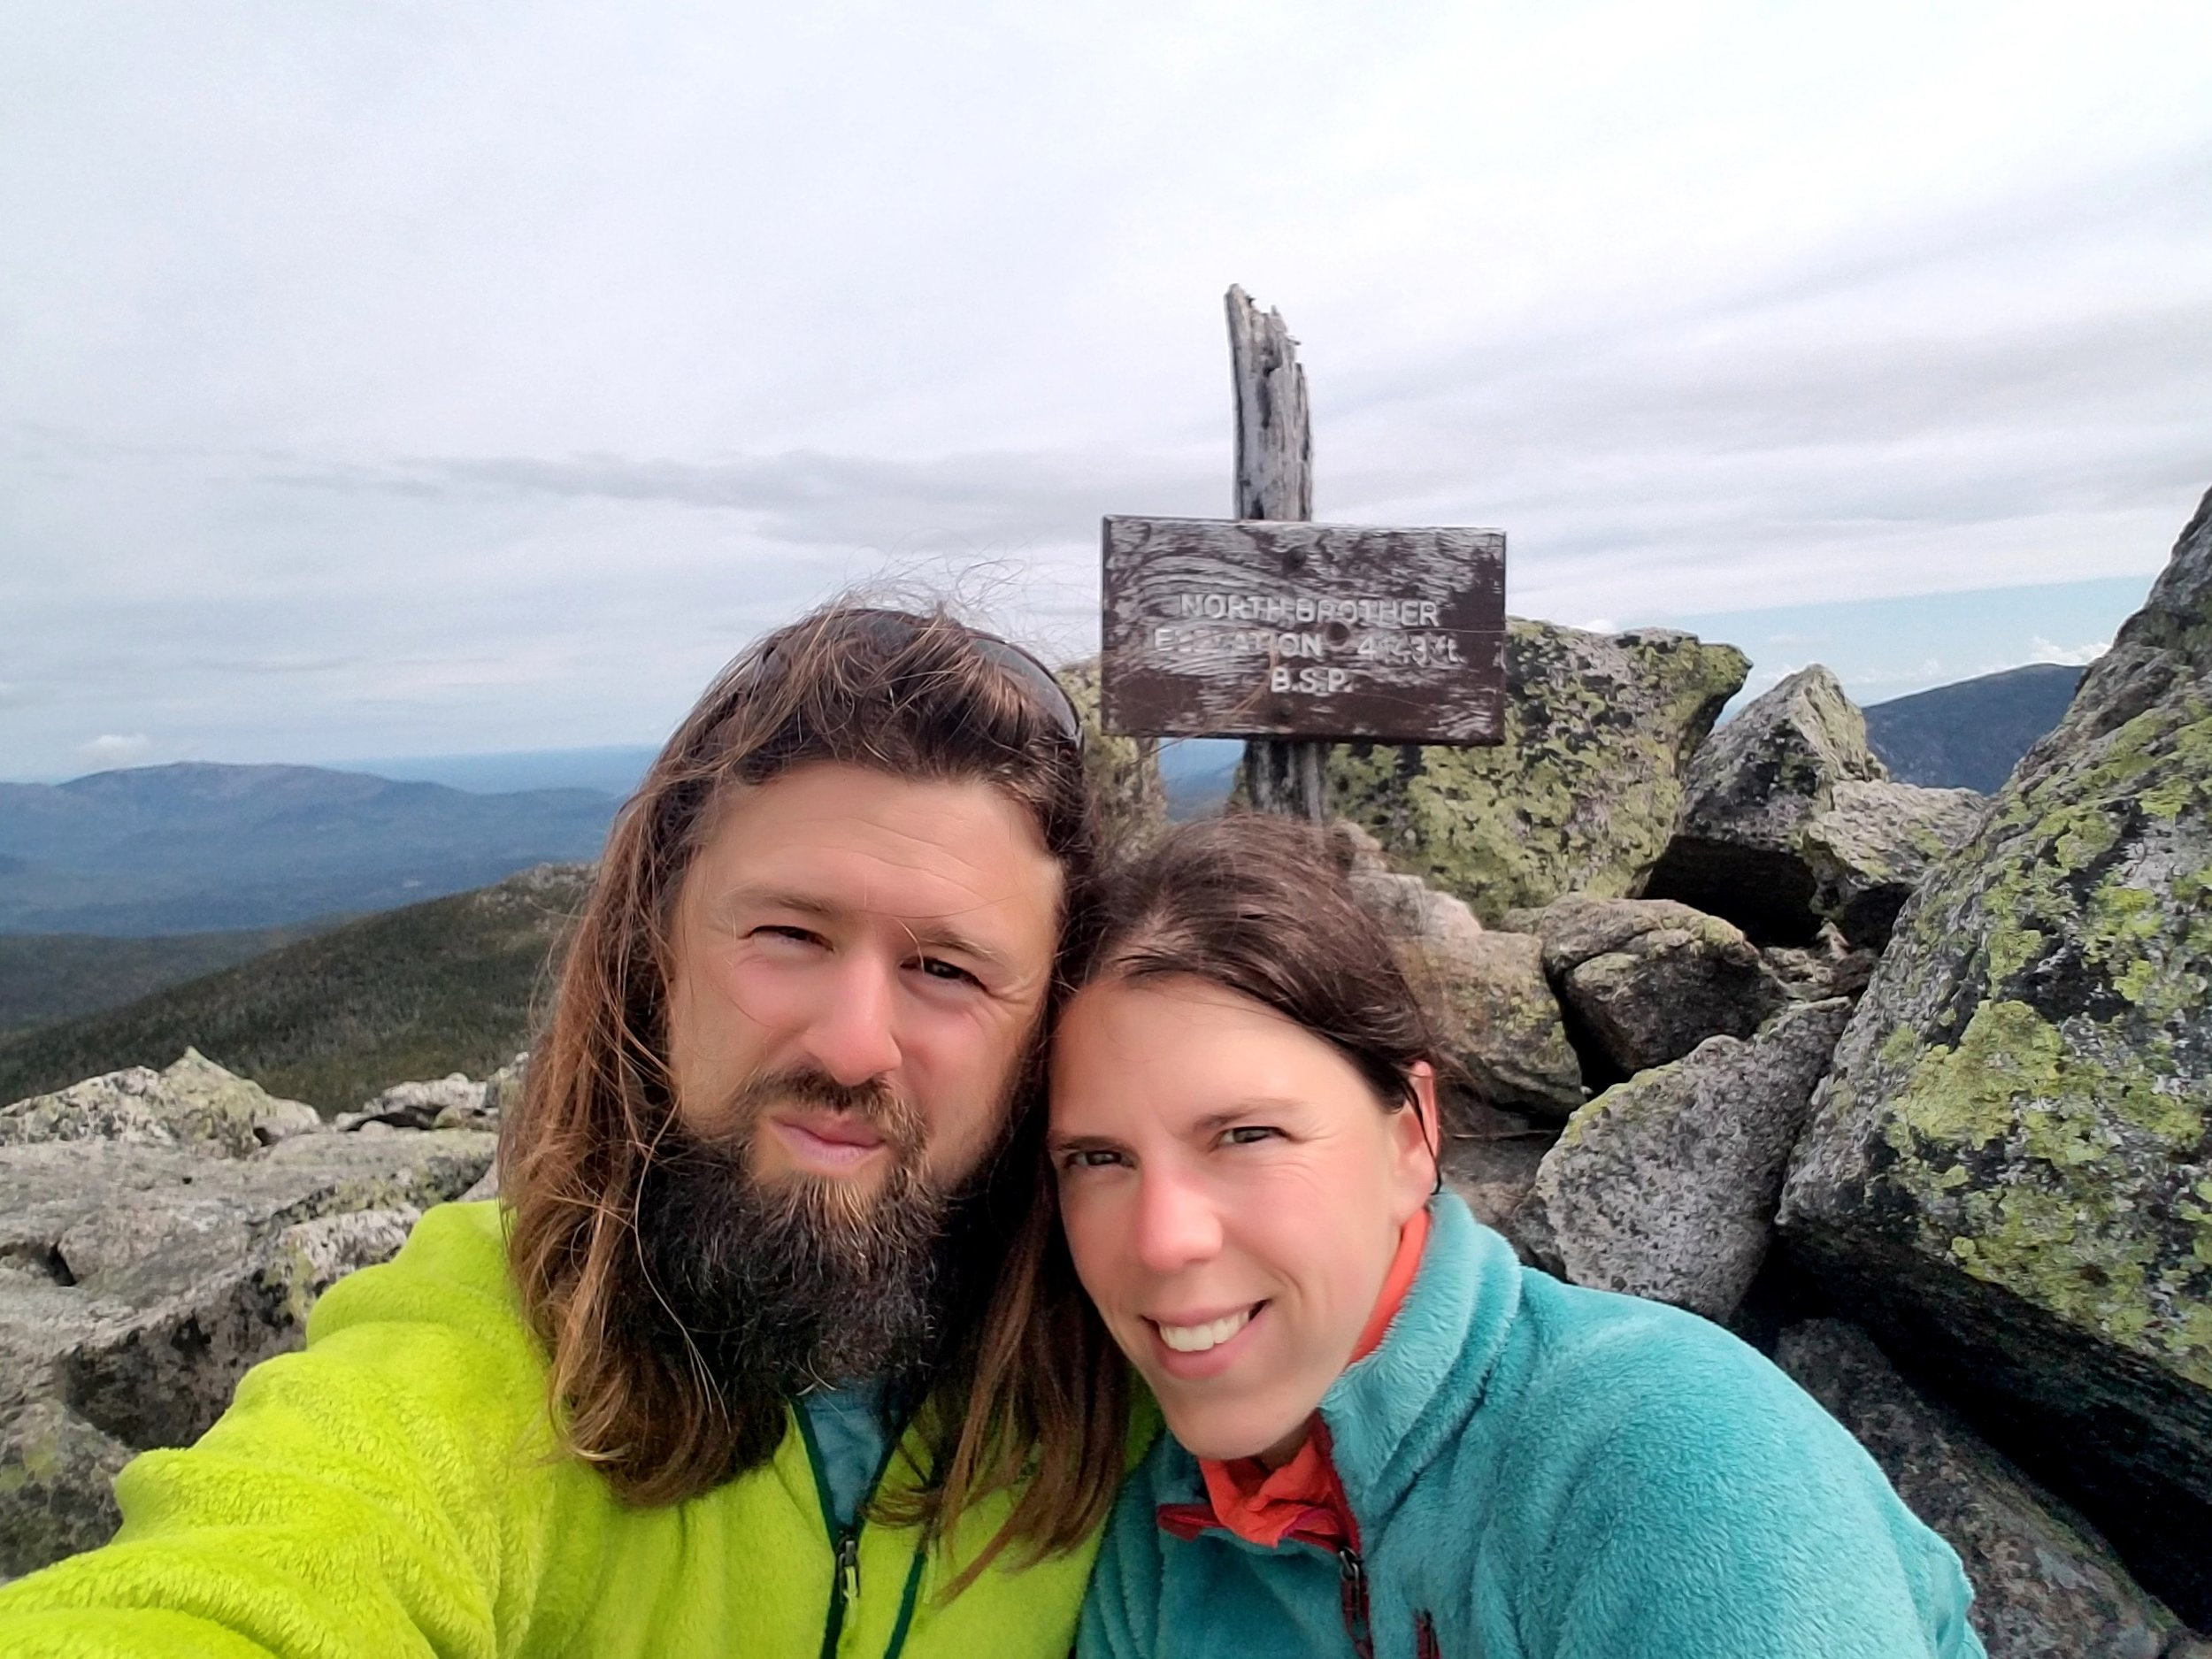 We completed Maine's 4000-footers this year. After many weekend driving and hiking miles, we completed our quest this fall at the summit of North Brother in Baxter State Park.